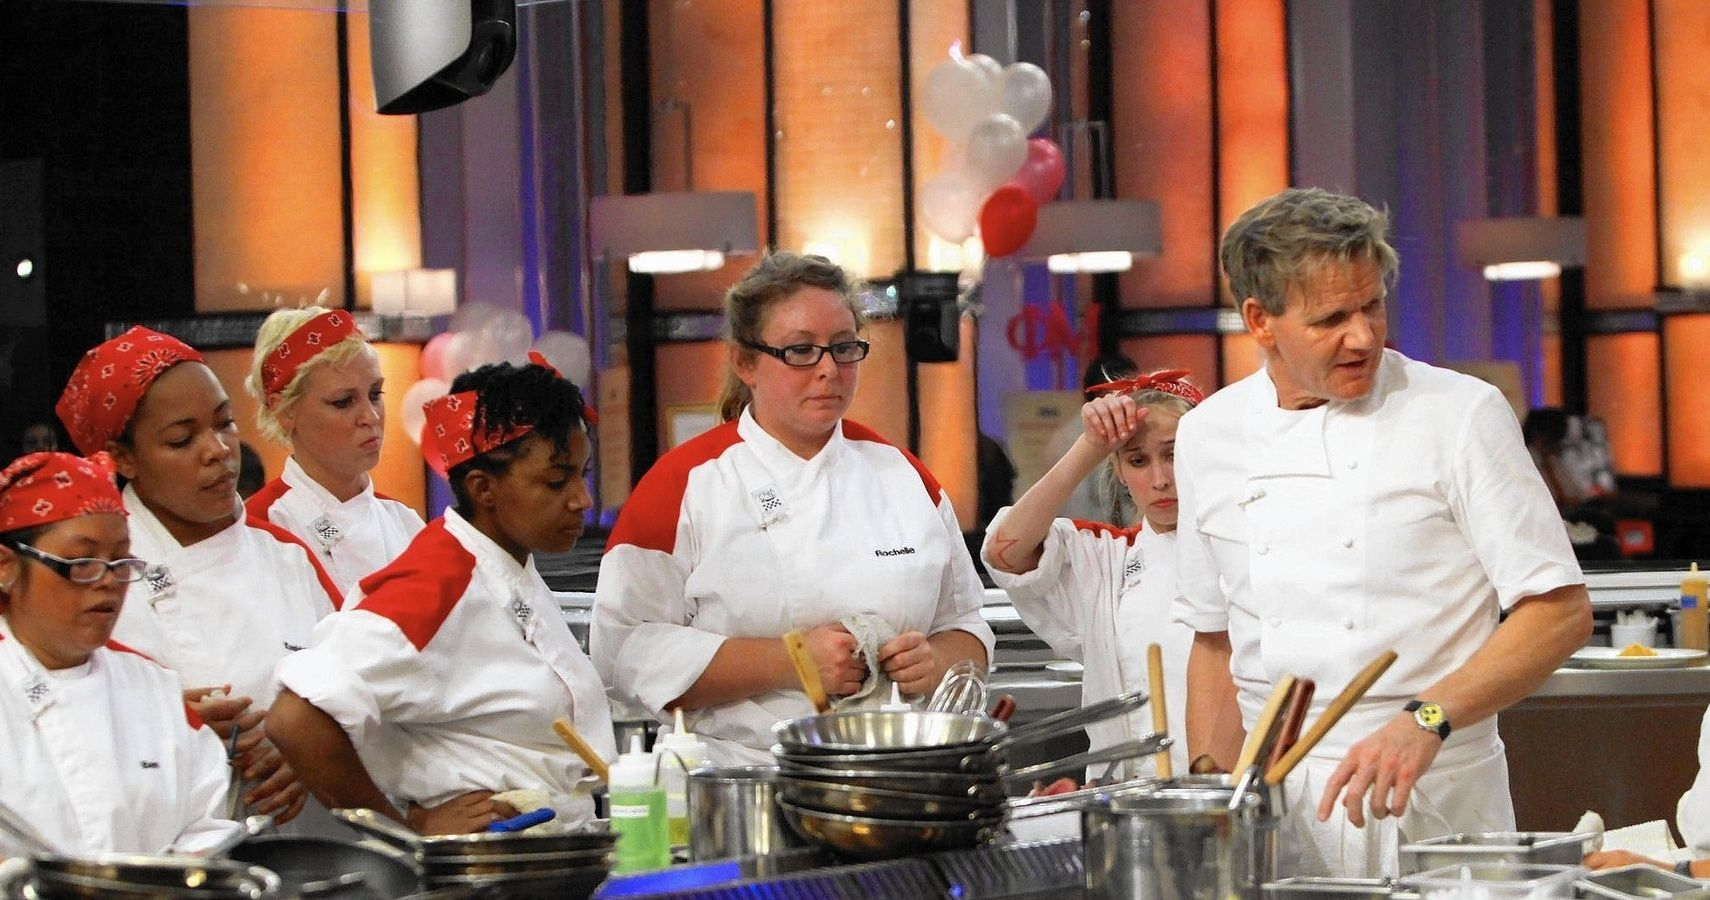 Hell S Kitchen 10 Worst Episodes From The Show Ranked